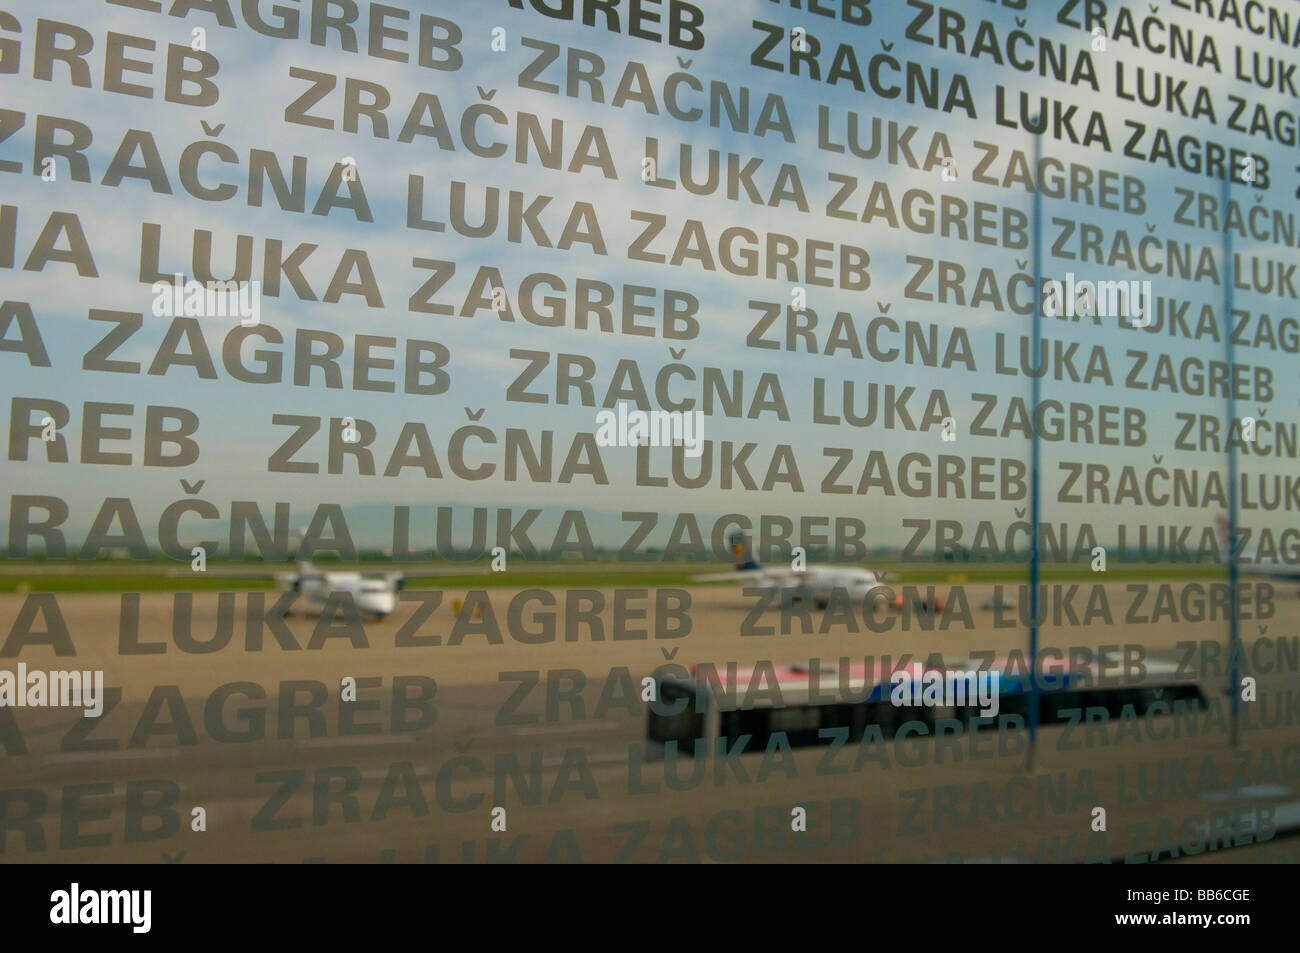 Zagreb Airport High Resolution Stock Photography And Images Alamy